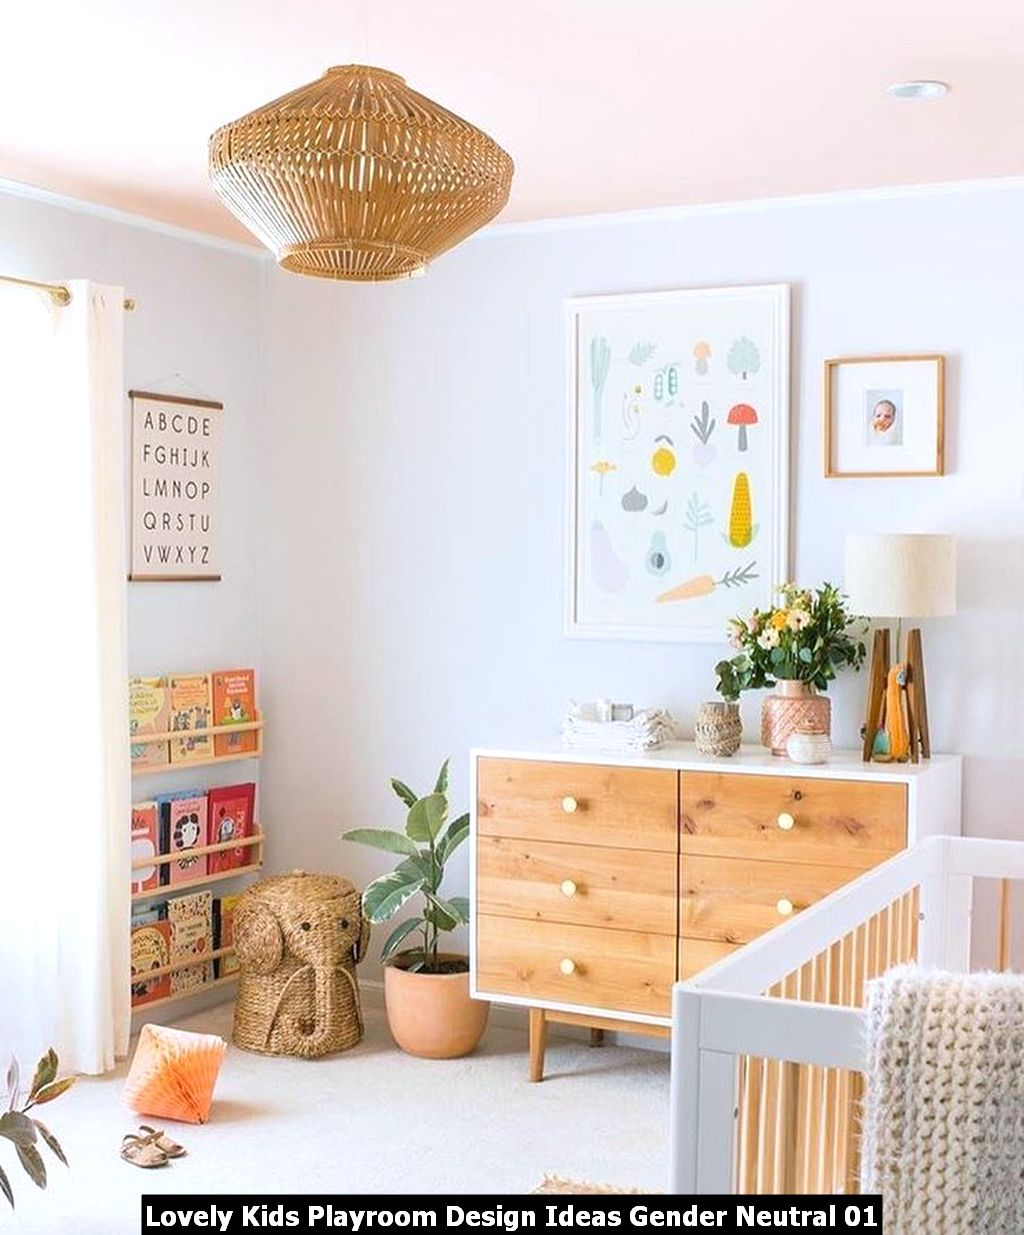 Lovely Kids Playroom Design Ideas Gender Neutral 01